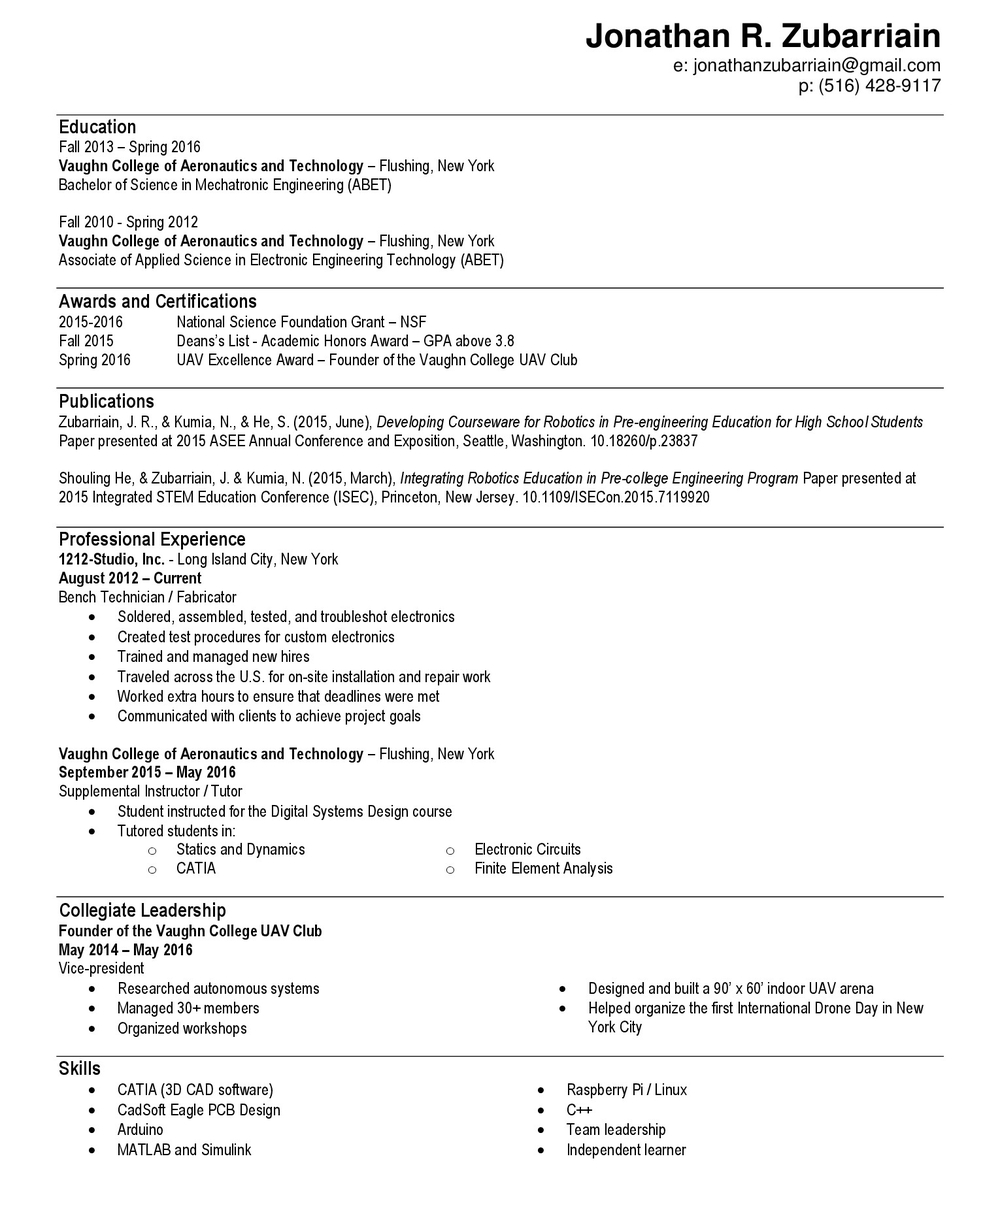 Resume — Jonathan Zubarriain